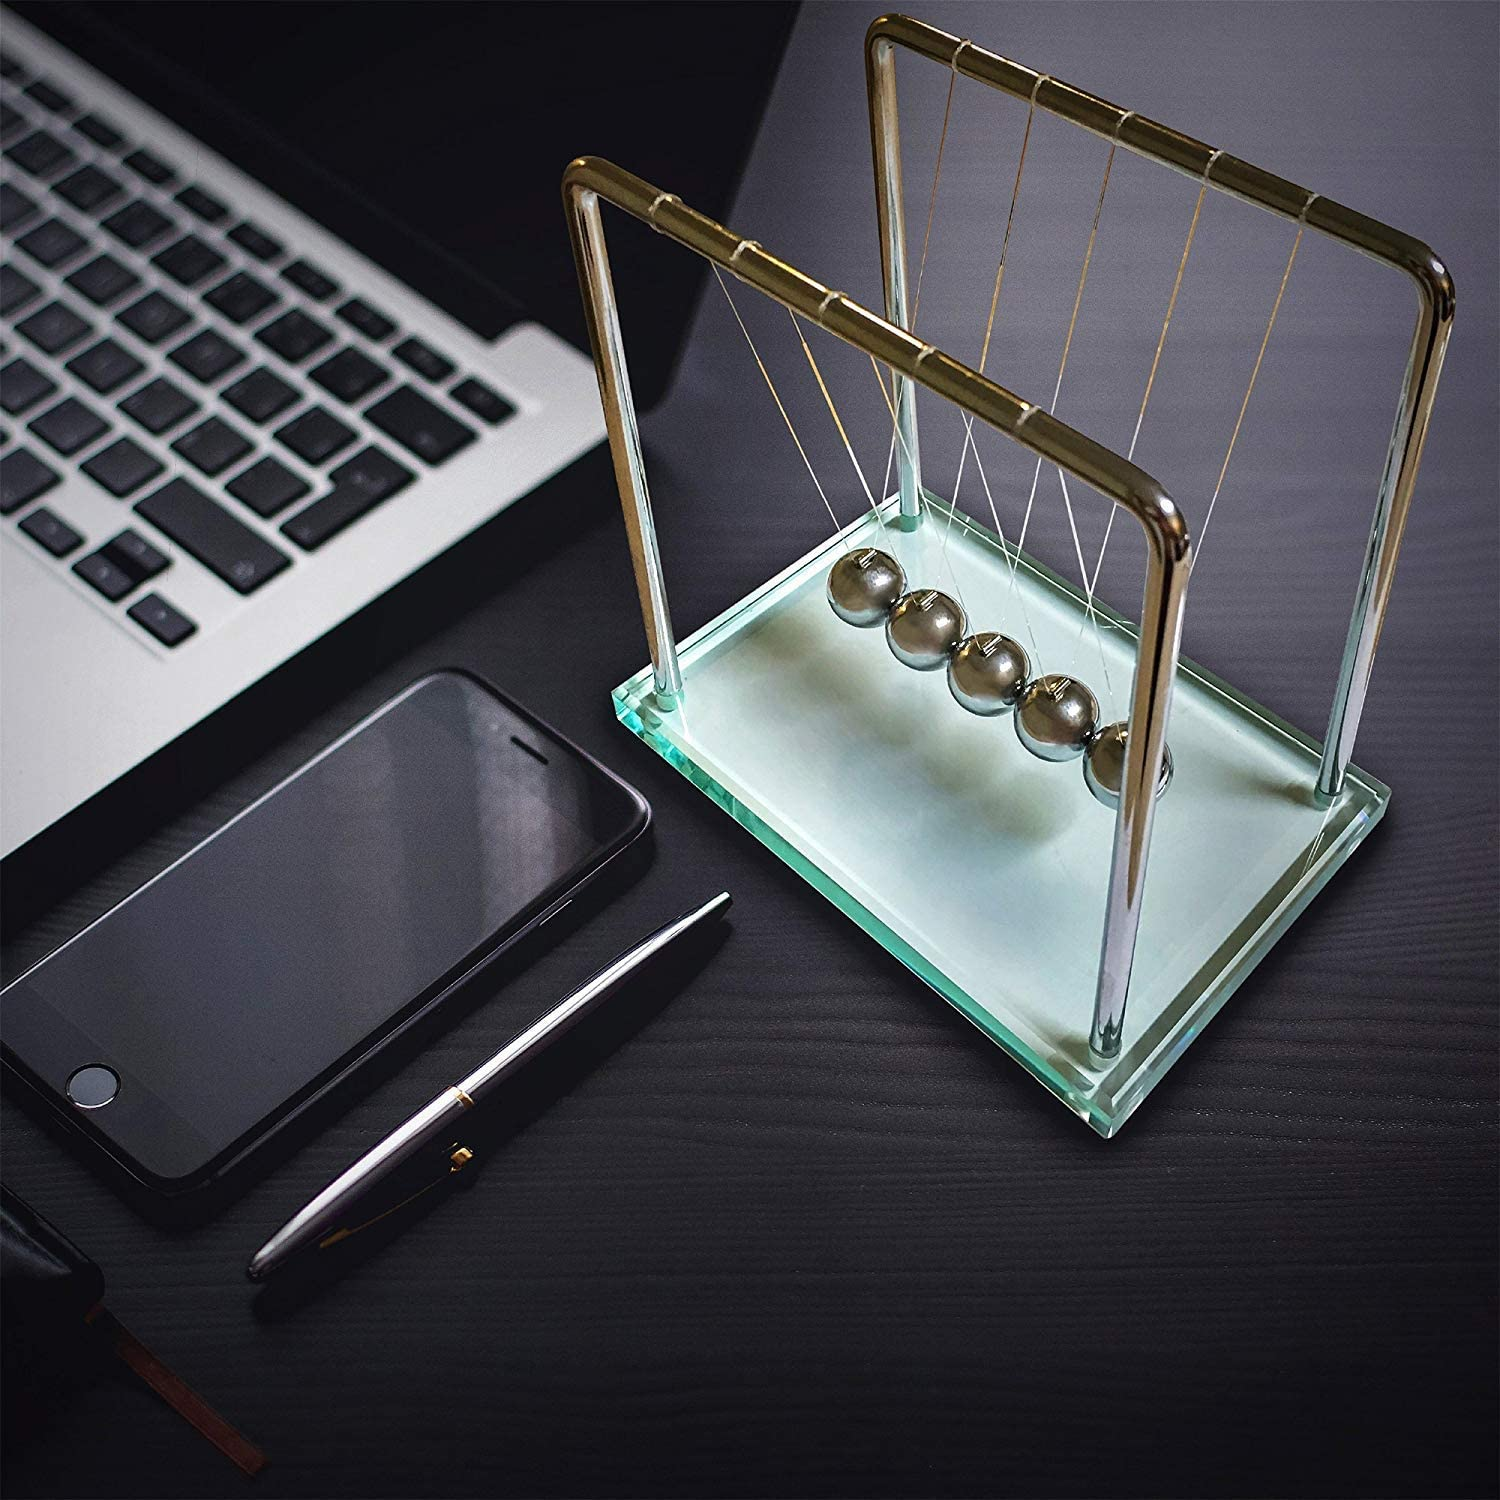 Home-X Medium Newtons Cradle 5.5 Inches Tall